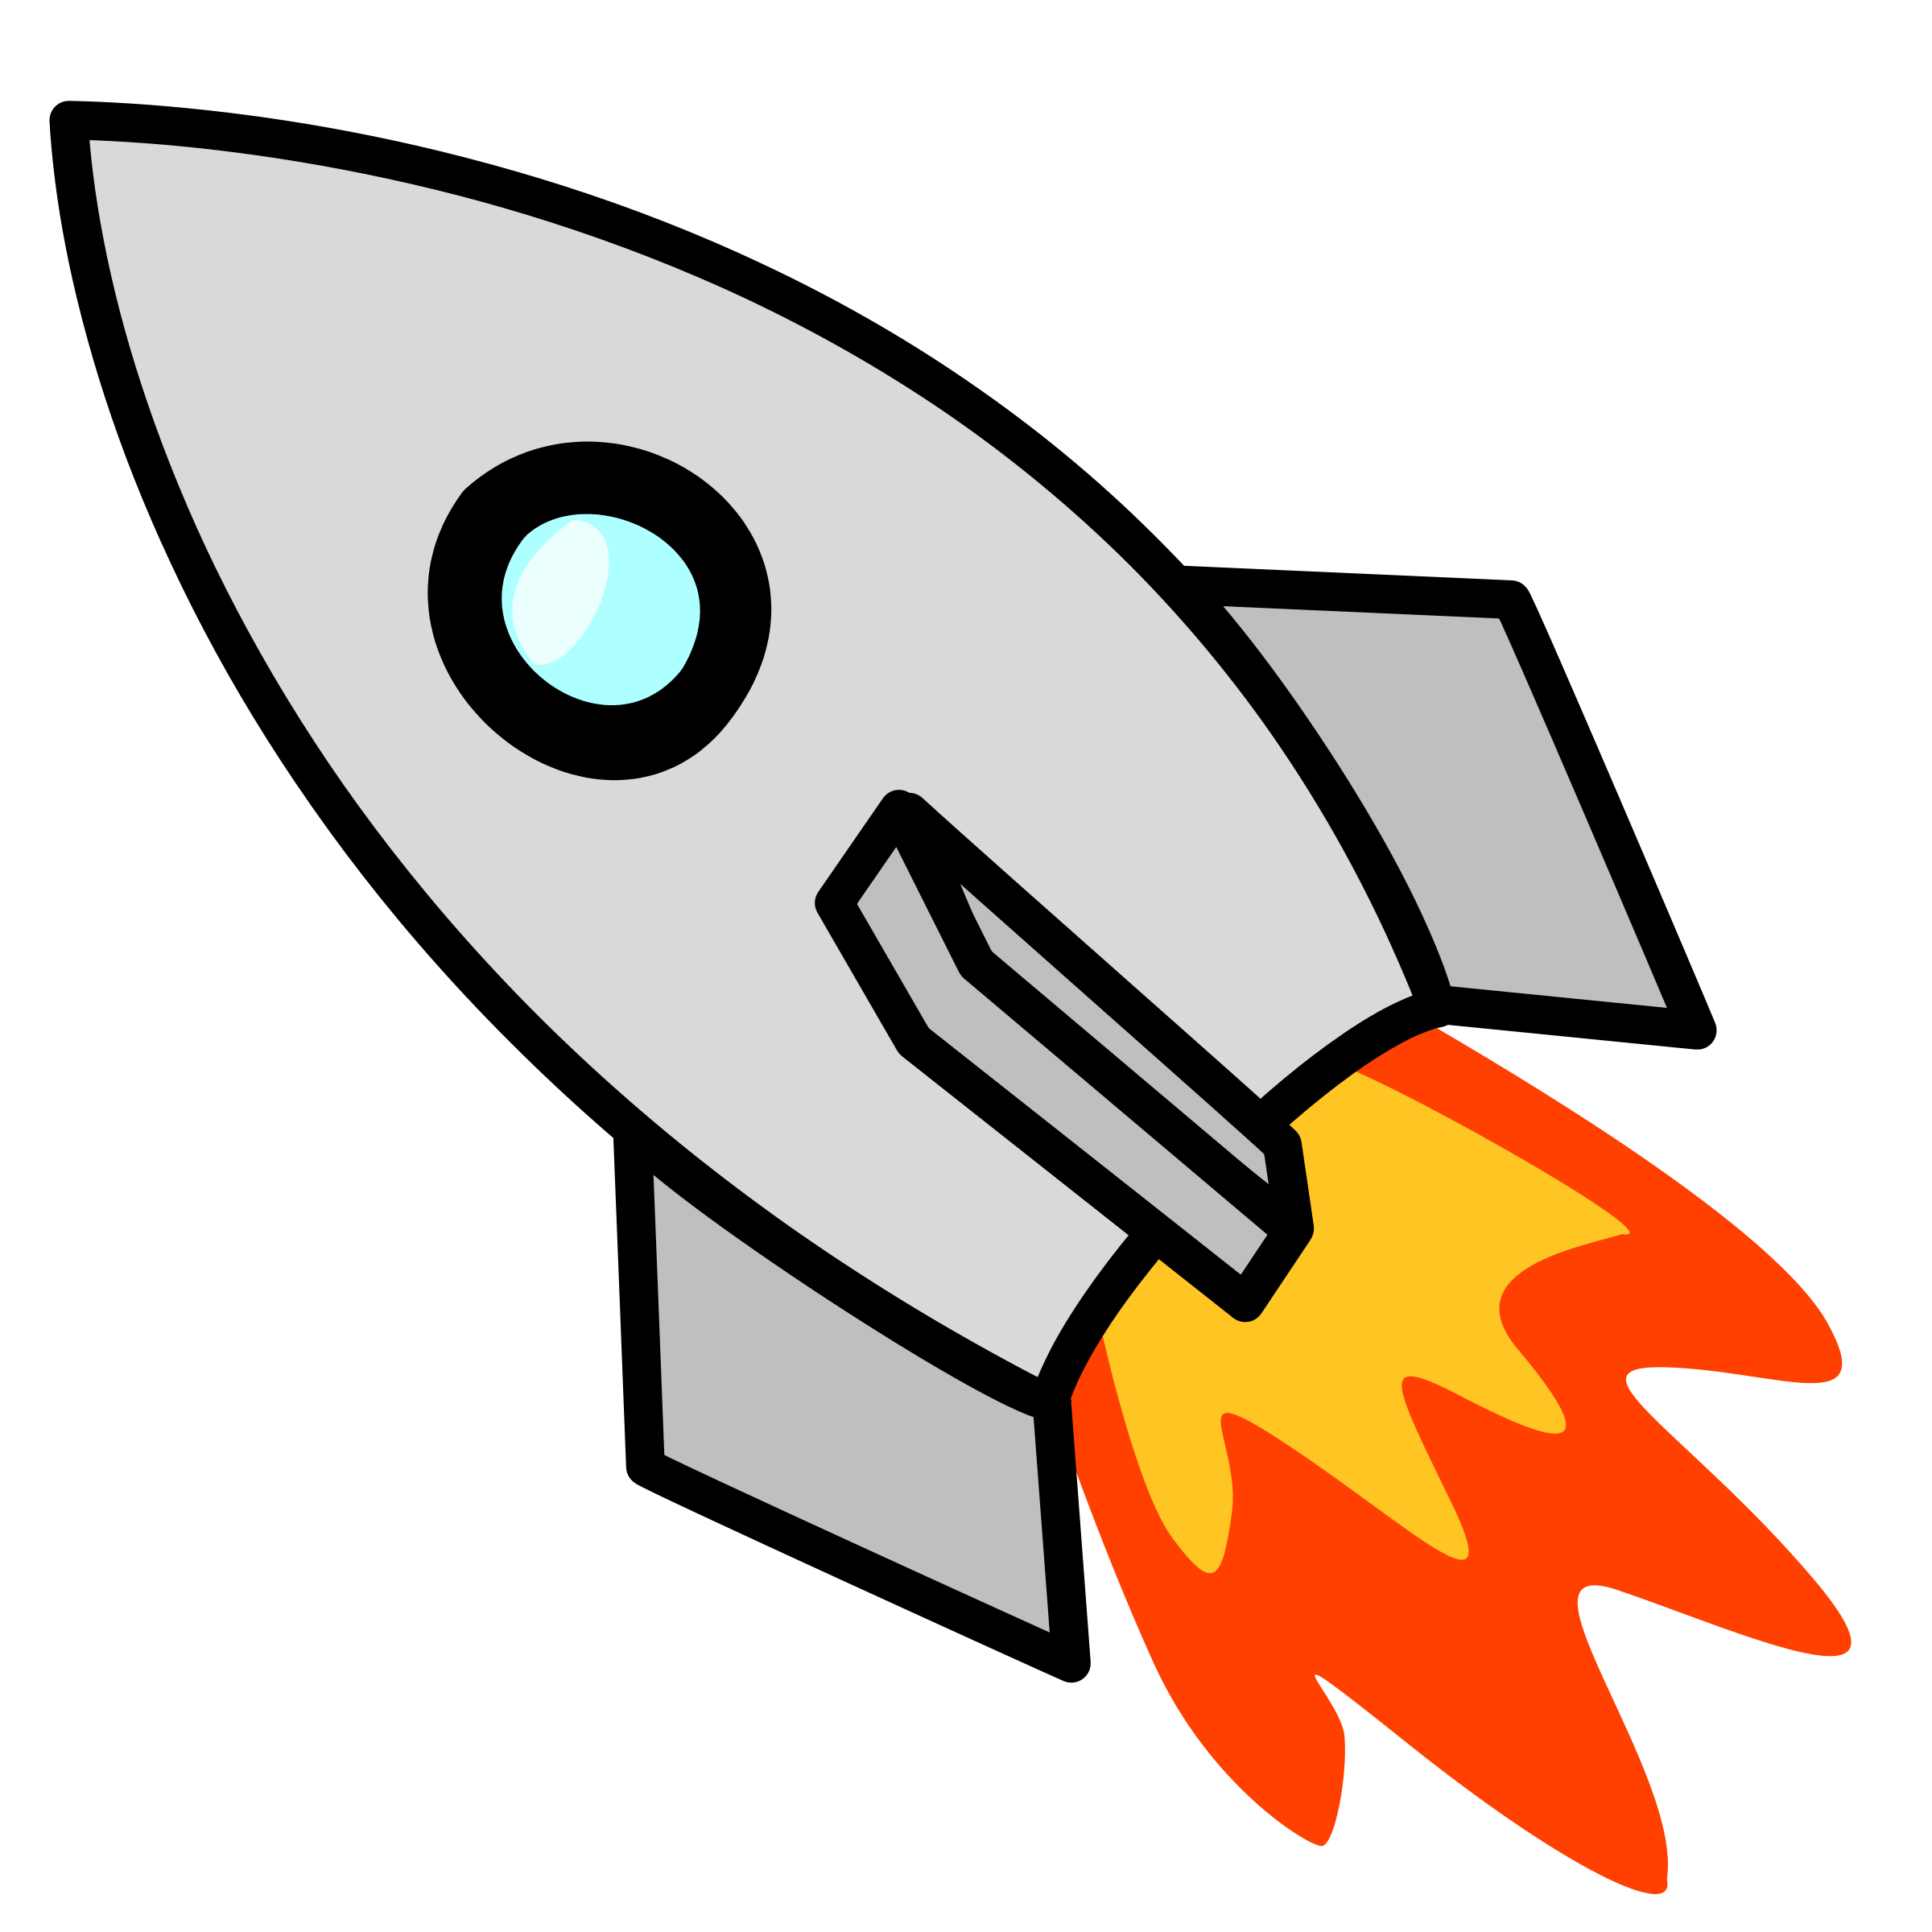 Clipart Of Rocket Ship Shapes Clipart Be-Clipart Of Rocket Ship Shapes Clipart Best-2